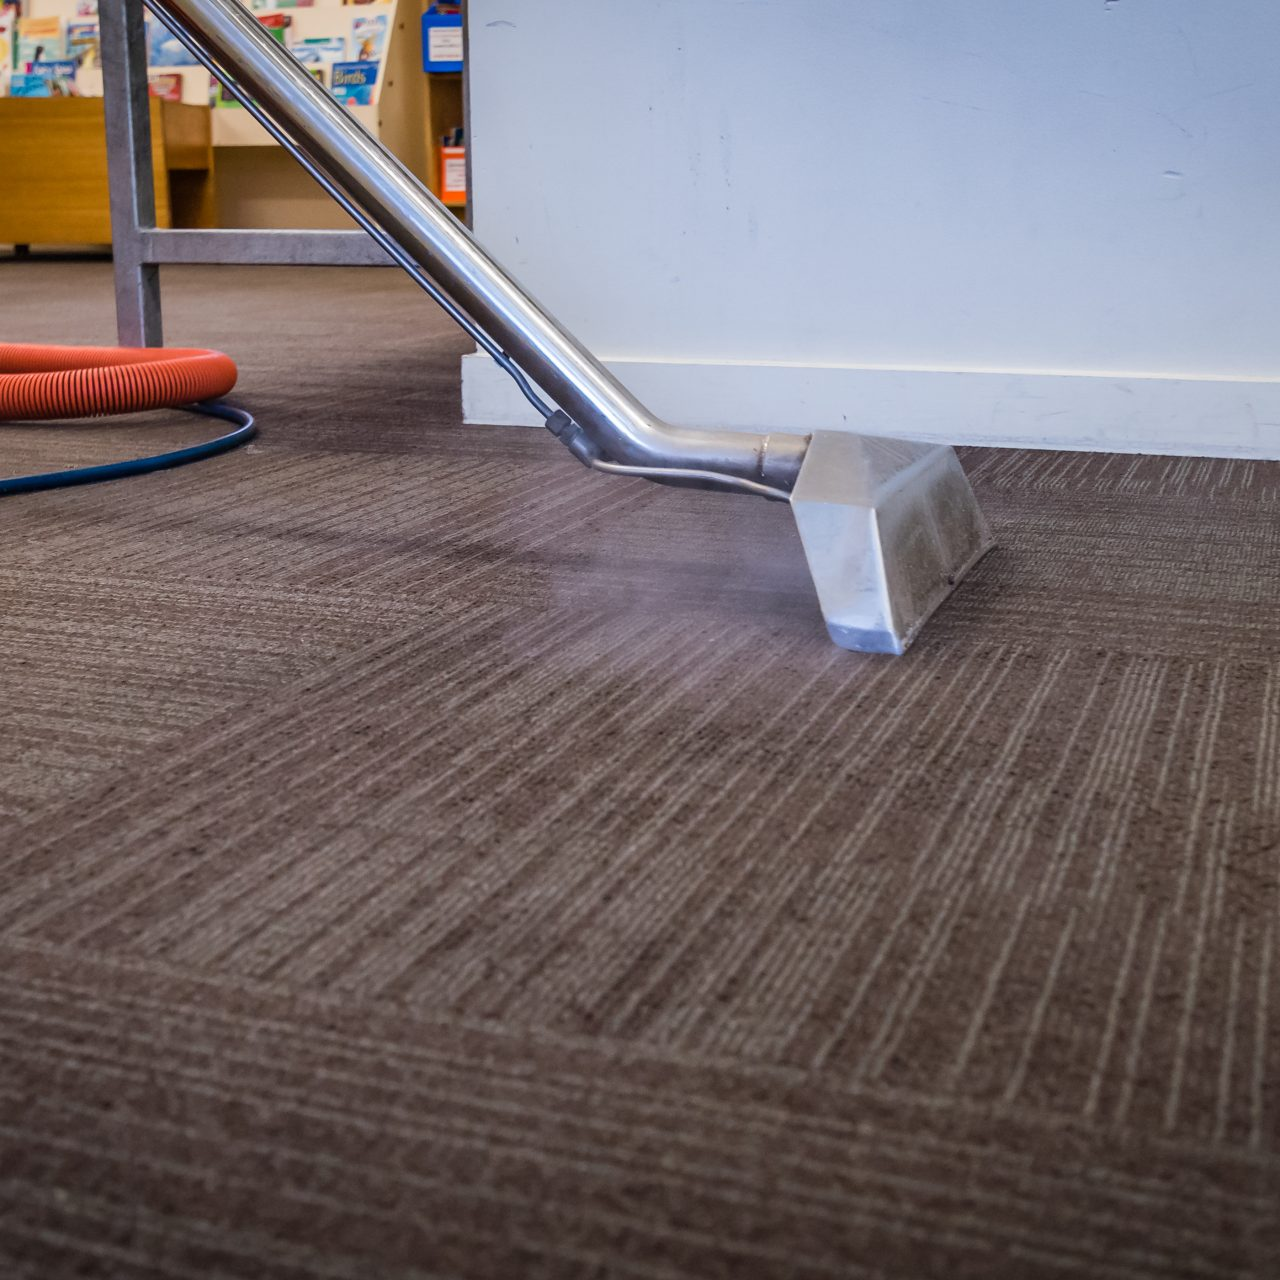 Steam,Carpet,Cleaning,At,A,School,-,Professional,Hot,Water